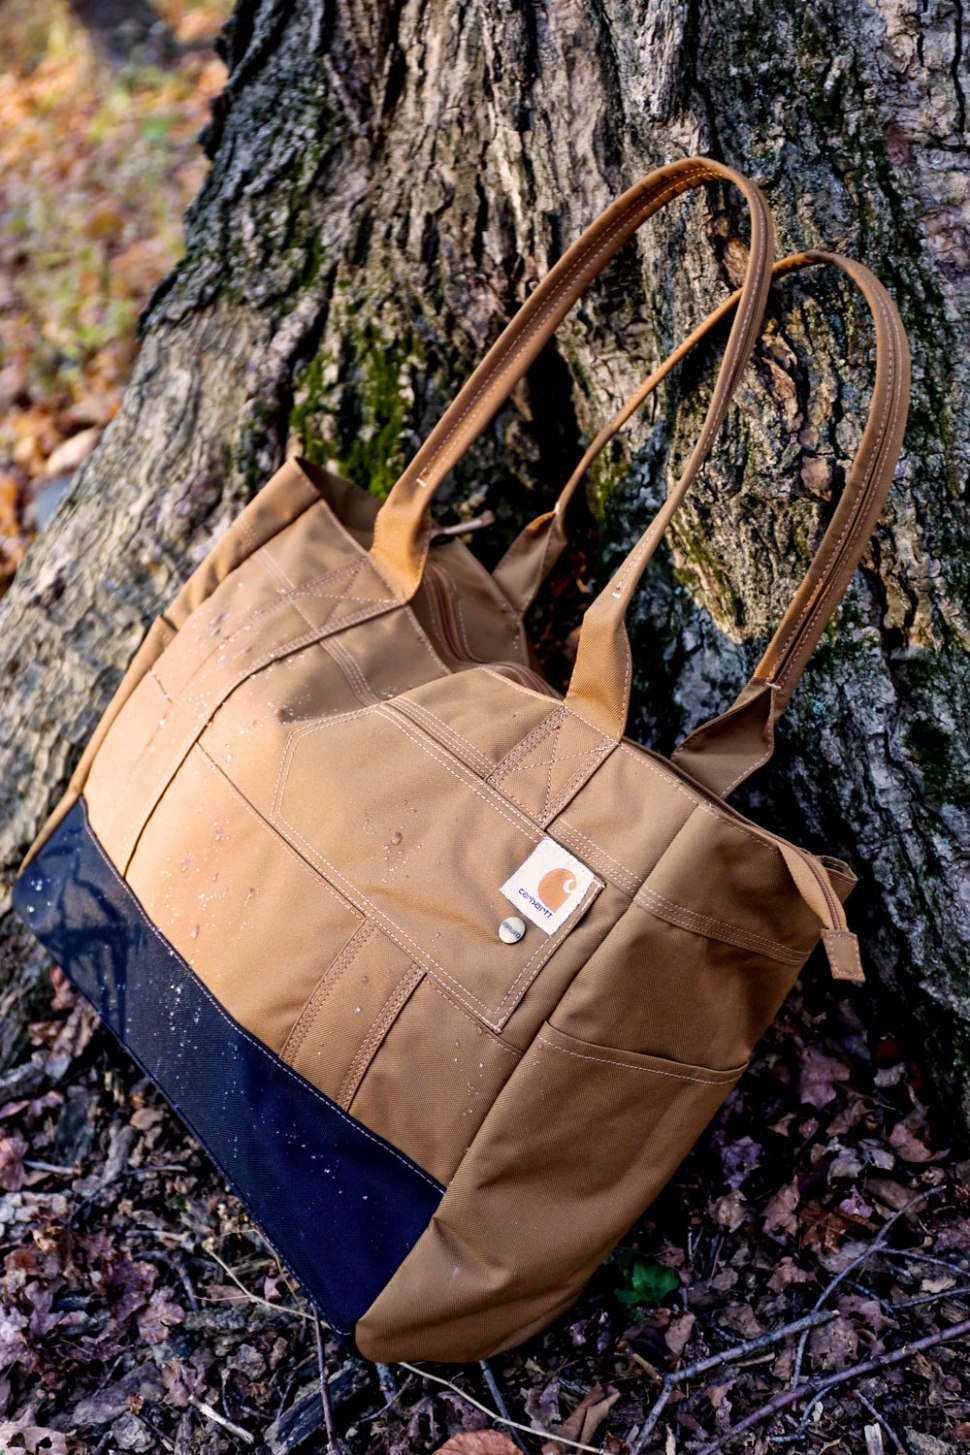 Carhartt East West Tote / Crafted in Carhartt